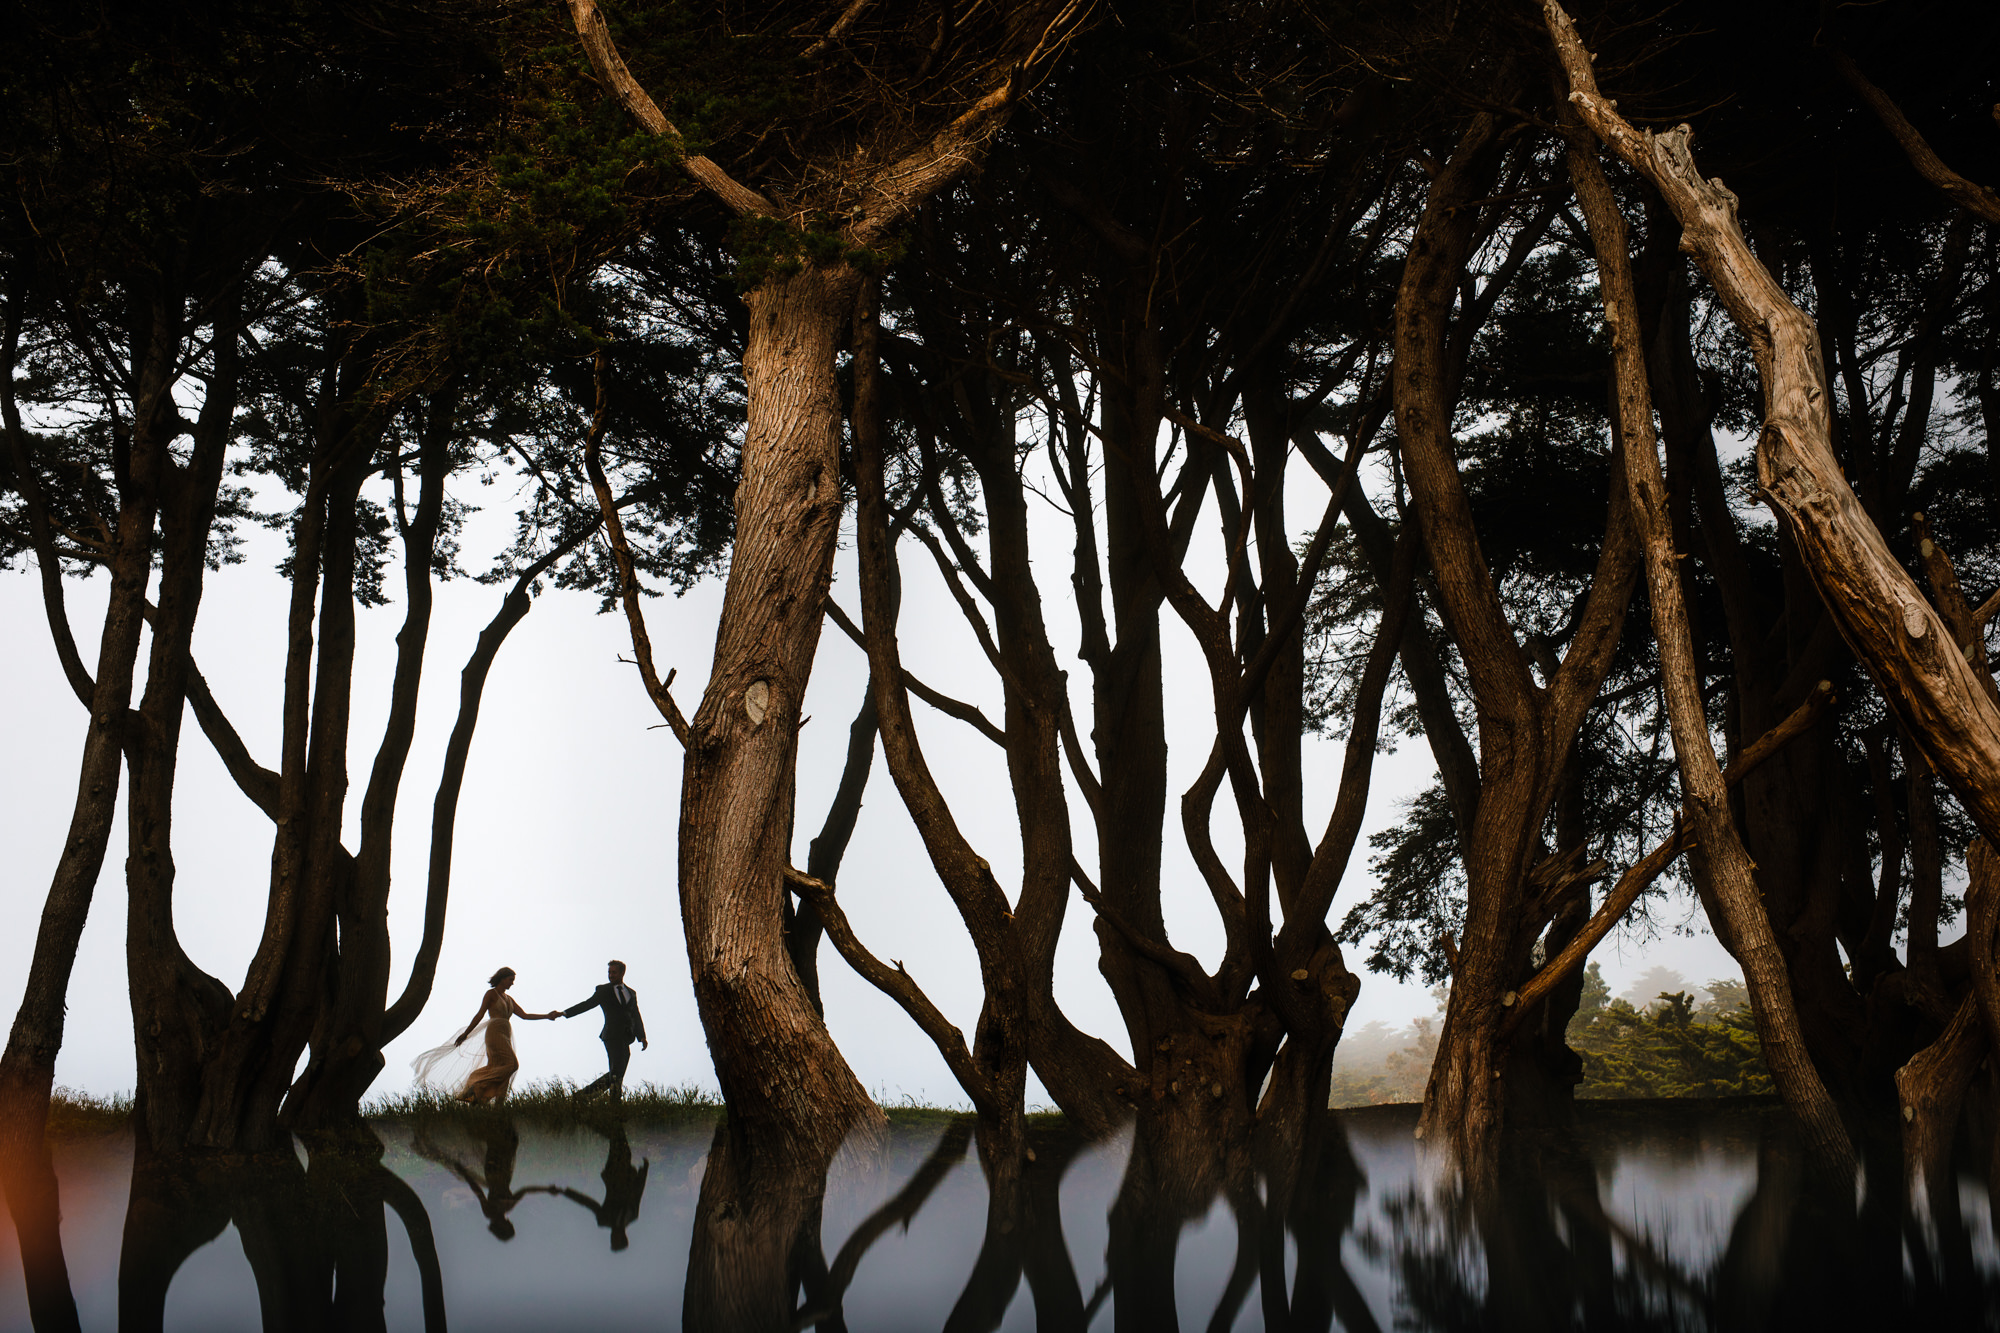 Silhouette reflection of couple woven into shape of trees, photo by Yves Schepers, Belgium wedding photographers